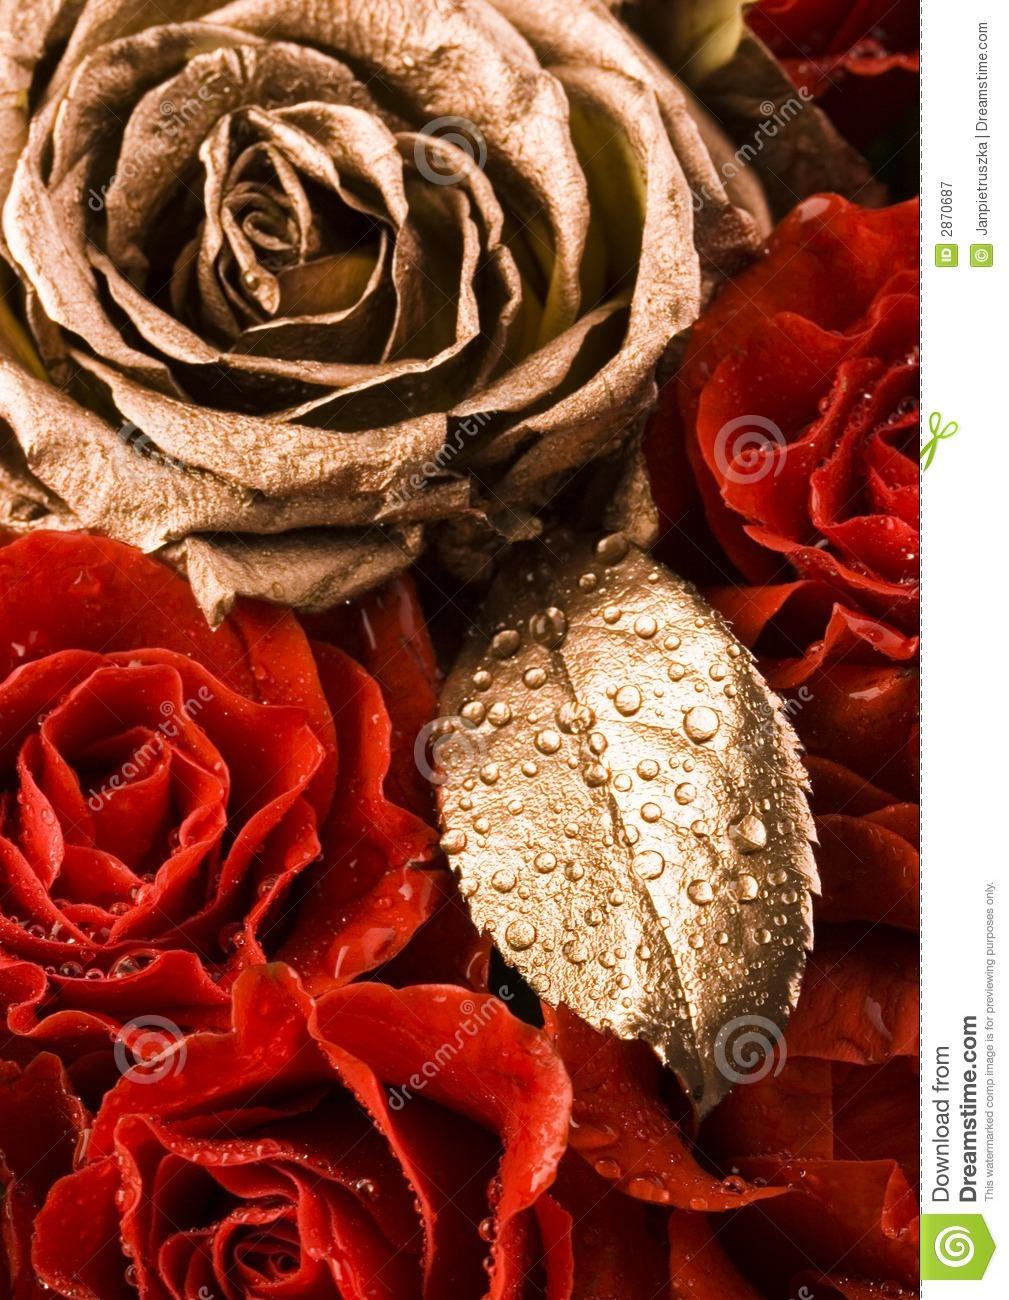 Gold Rose & Red Roses Royalty Free Stock Photography - Image: 2870687